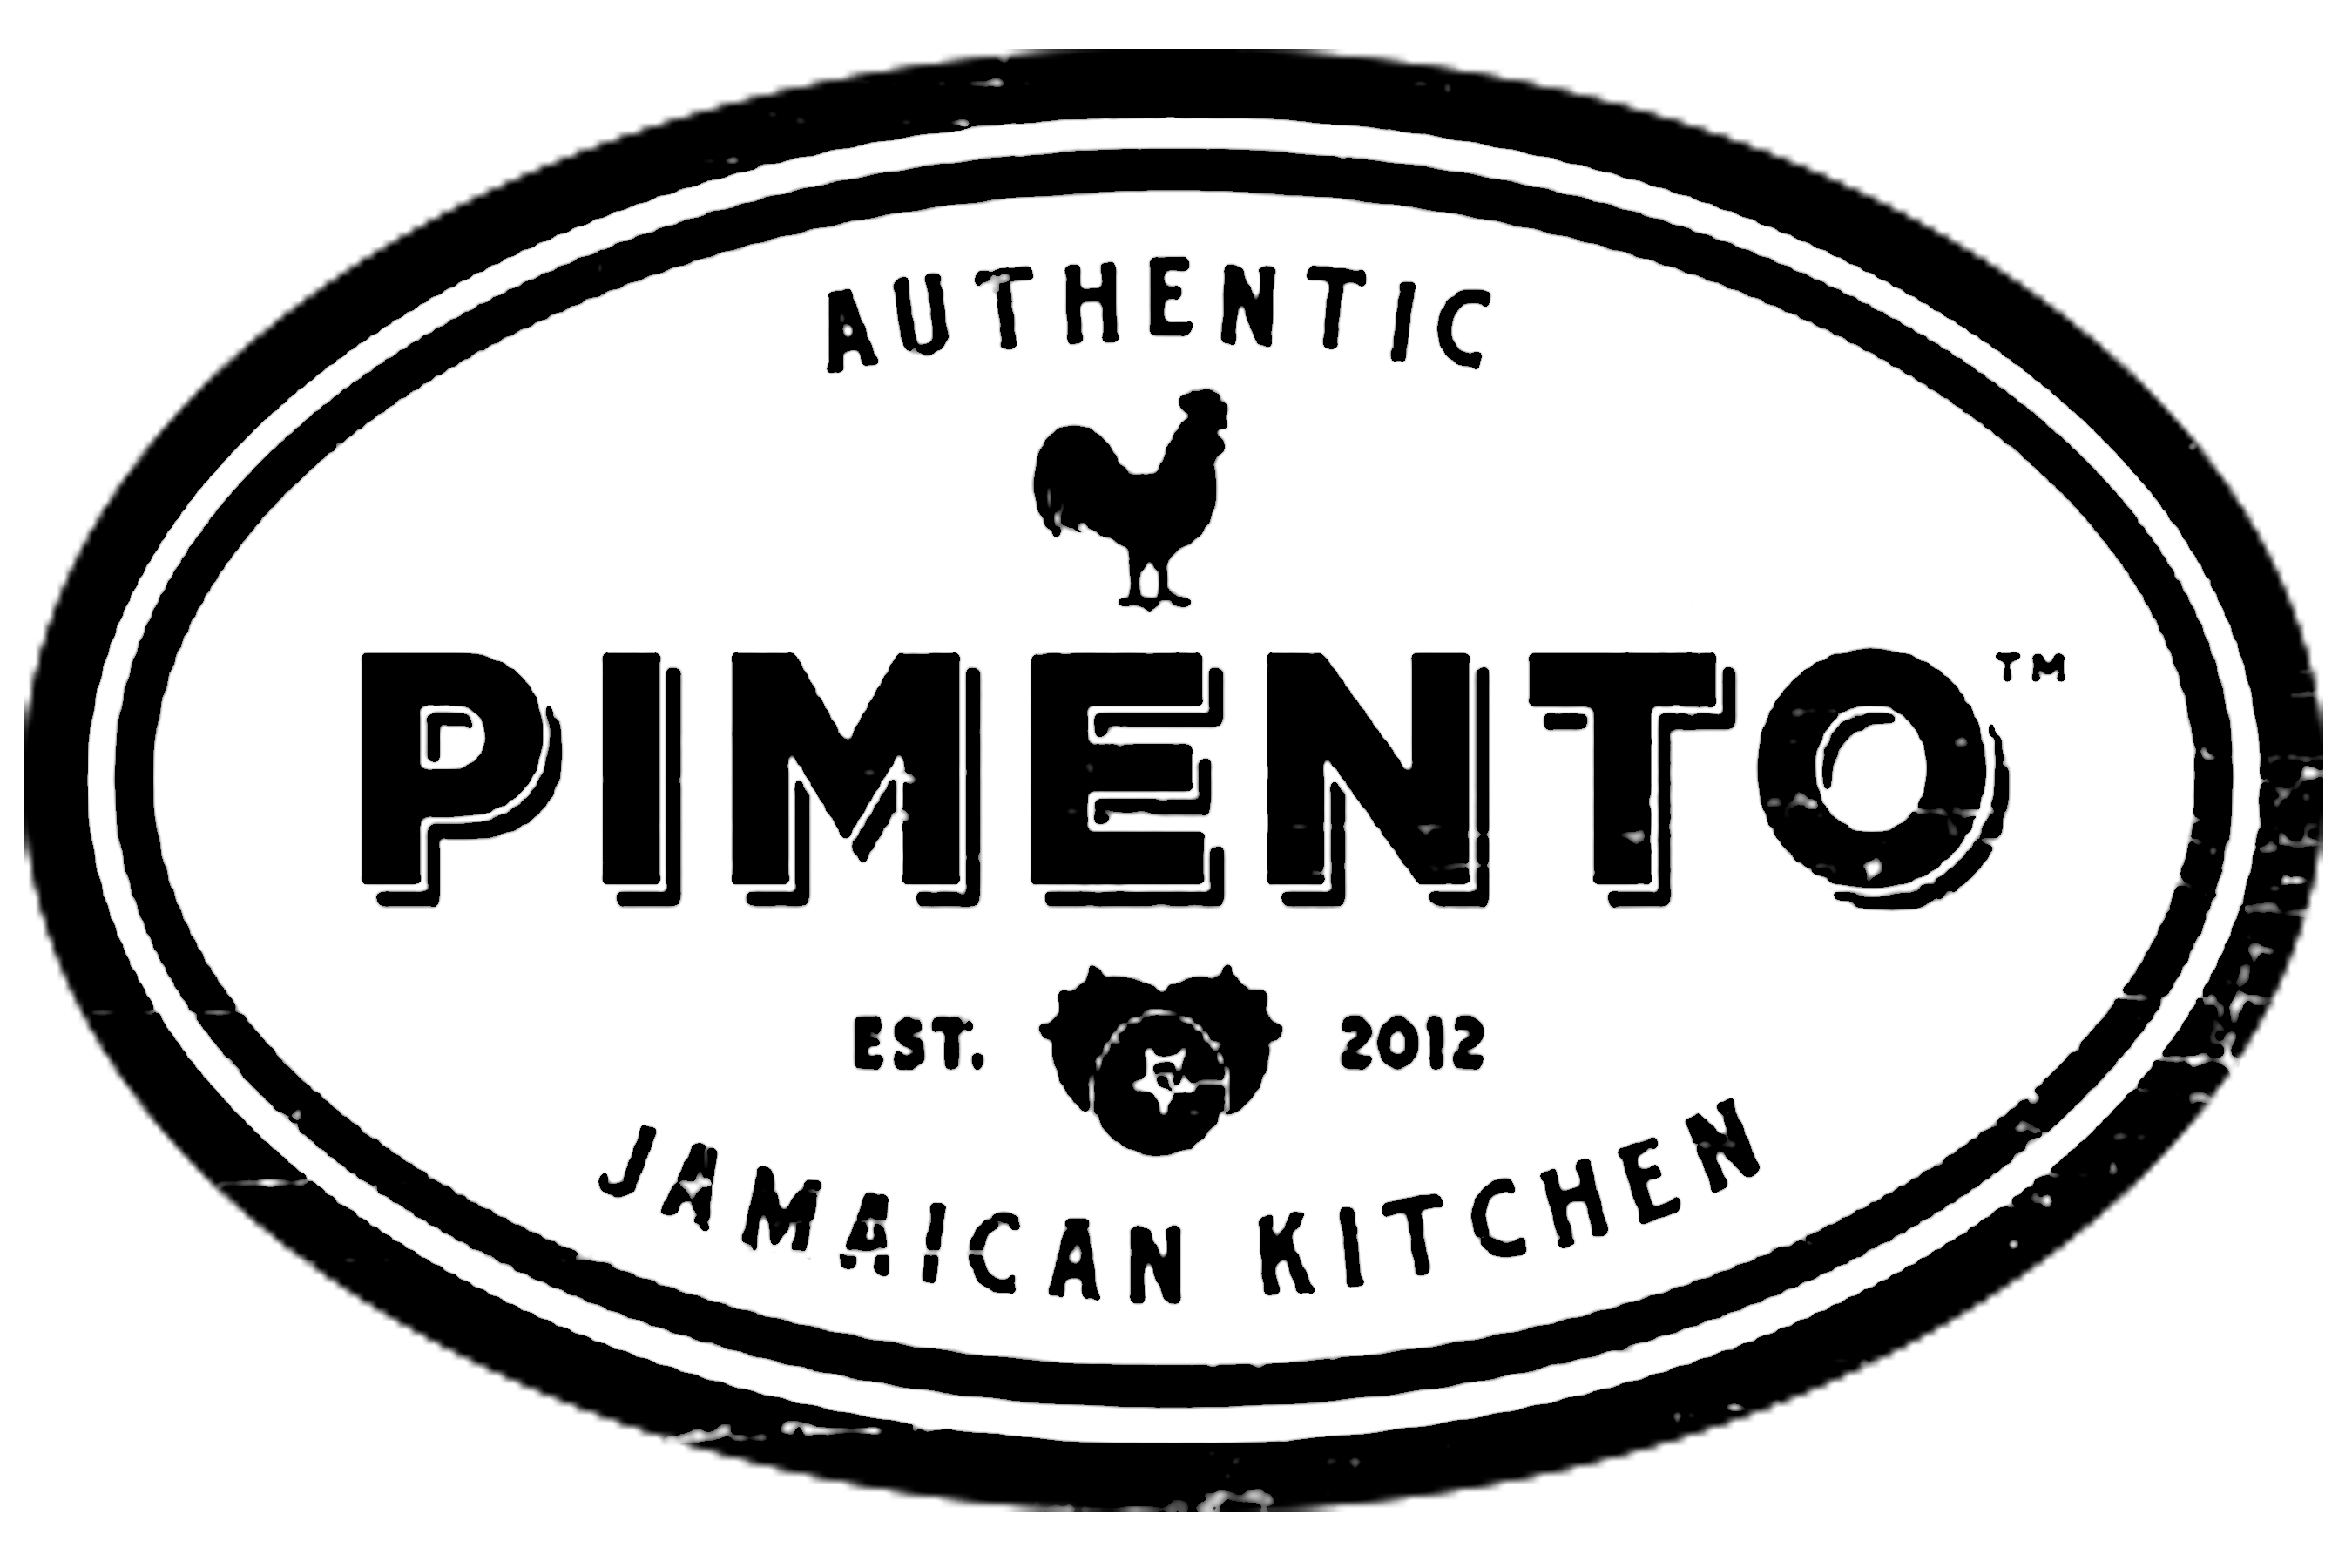 Jamaican drawing logo. Home pimento kitchen rum